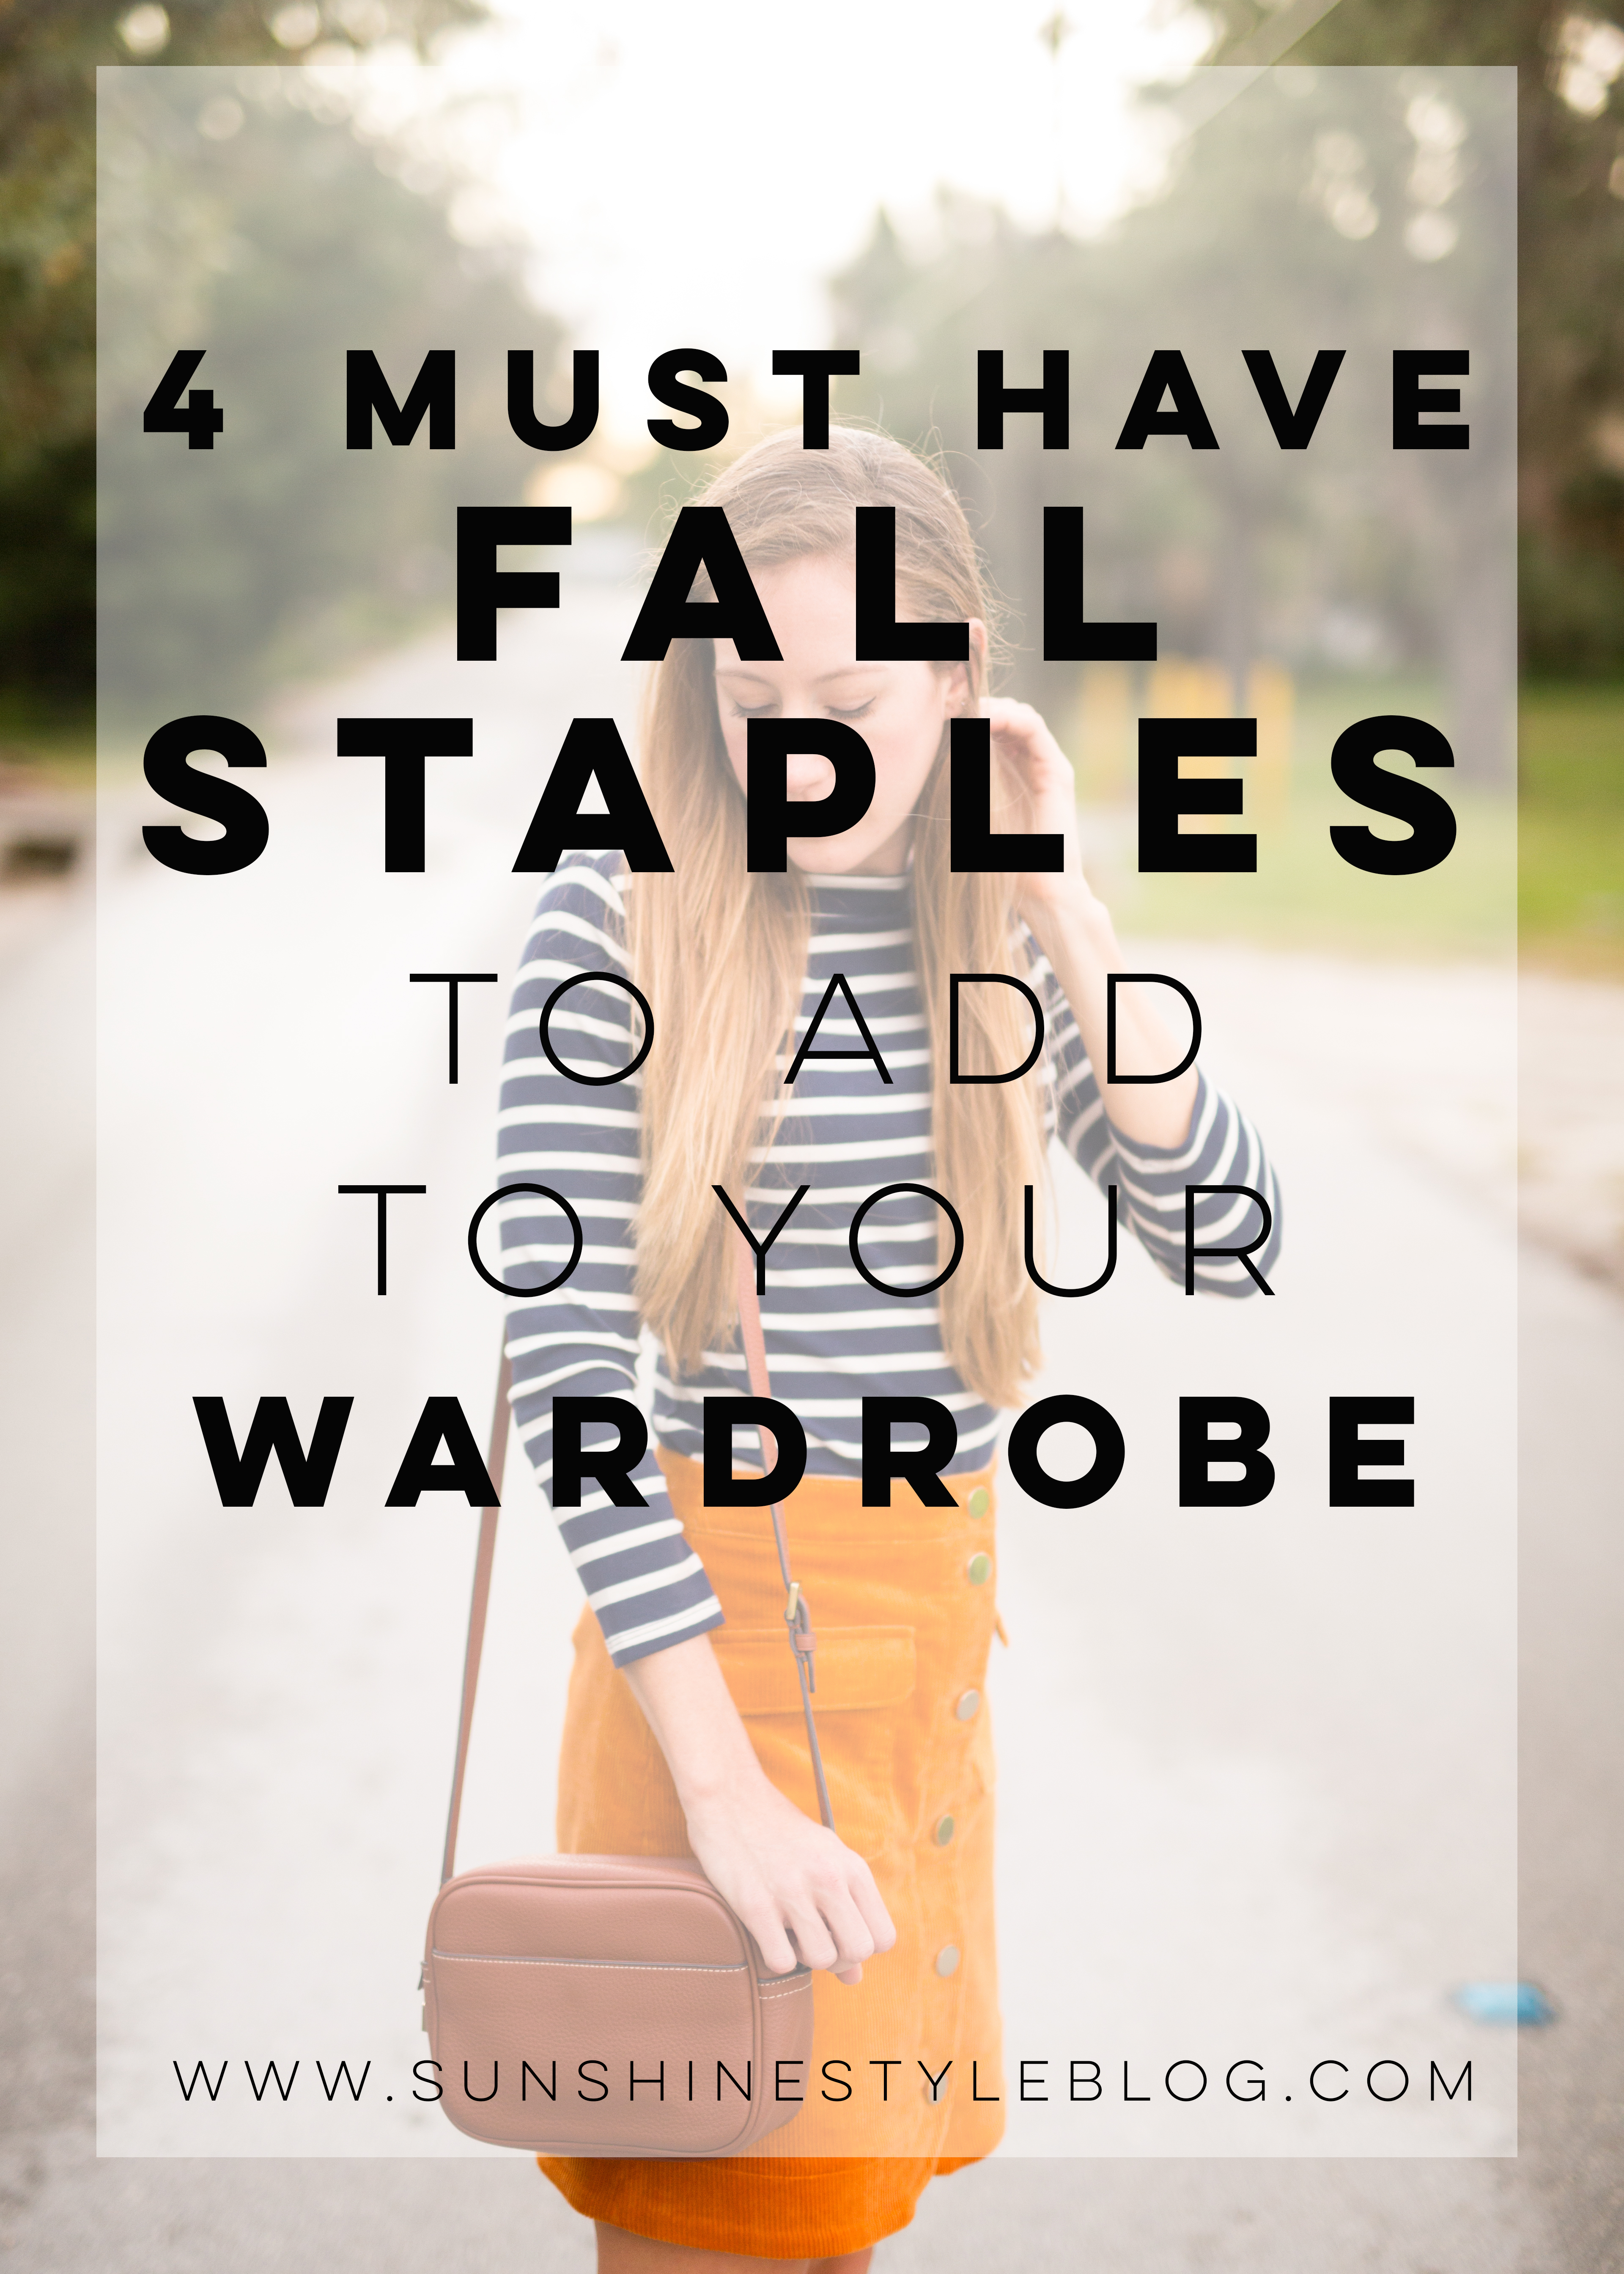 4 Must Have Fall Staples to Add to Your Wardrobe